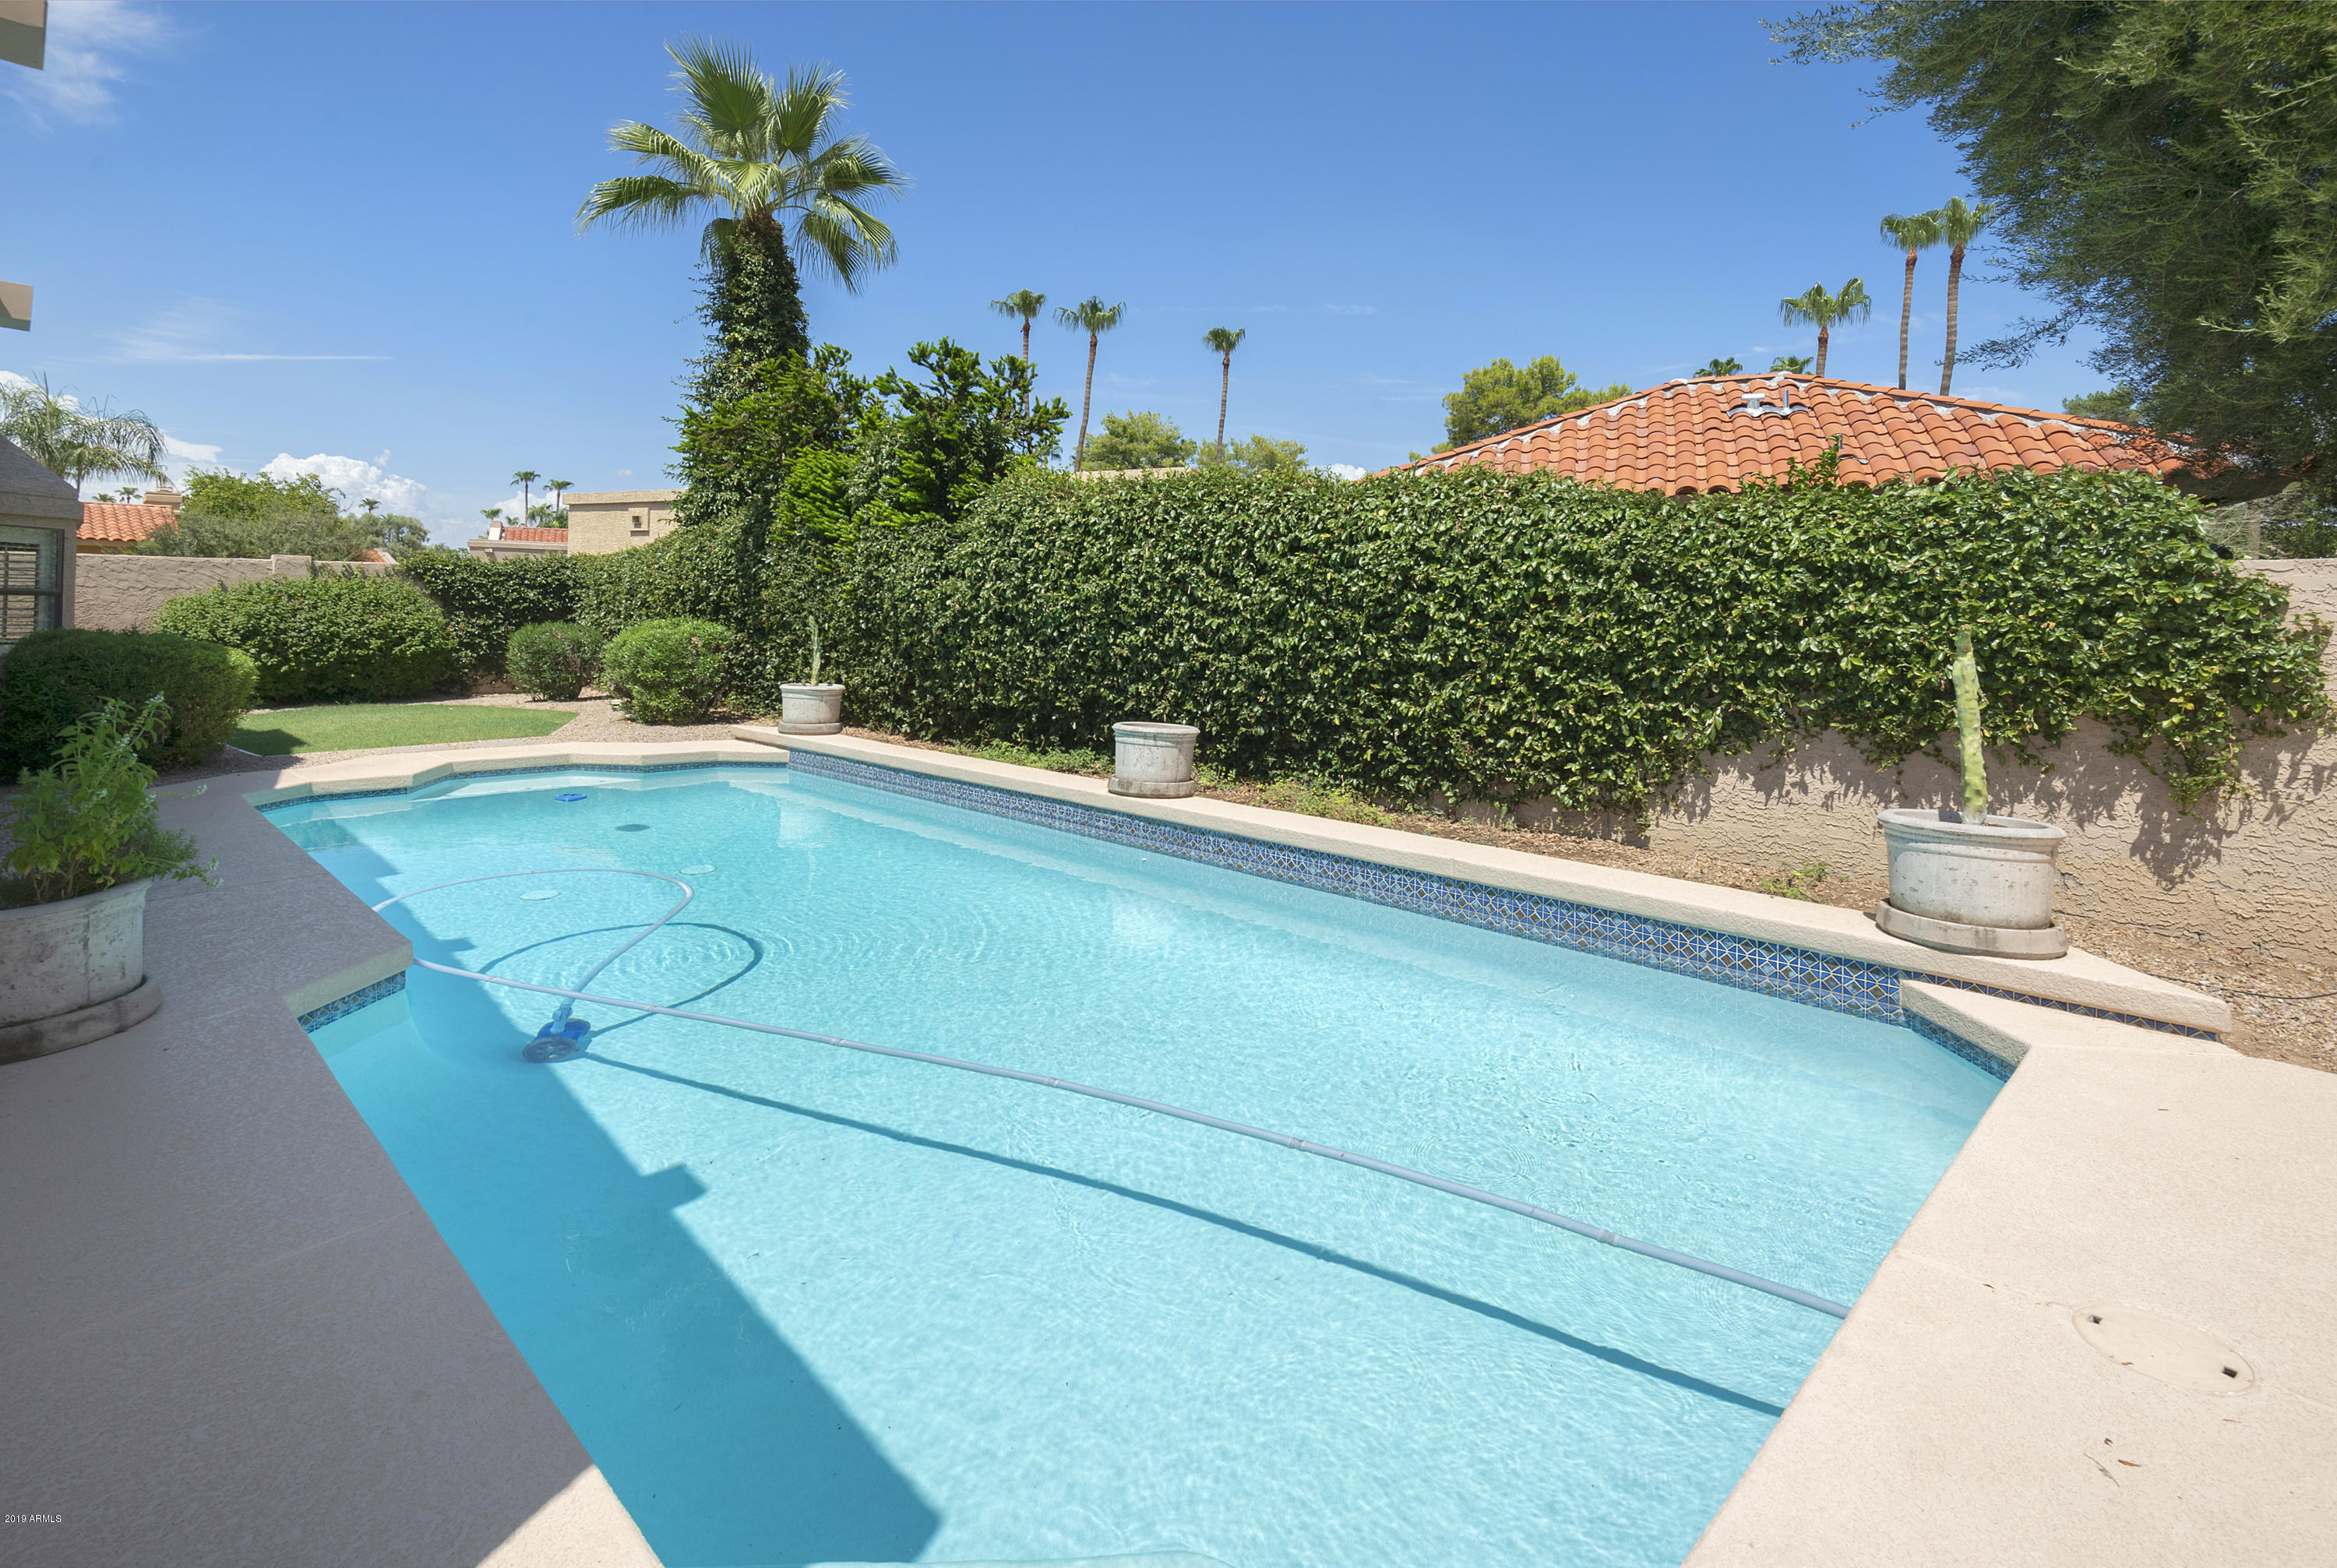 9419 N 87TH Street, one of homes for sale in McCormick Ranch